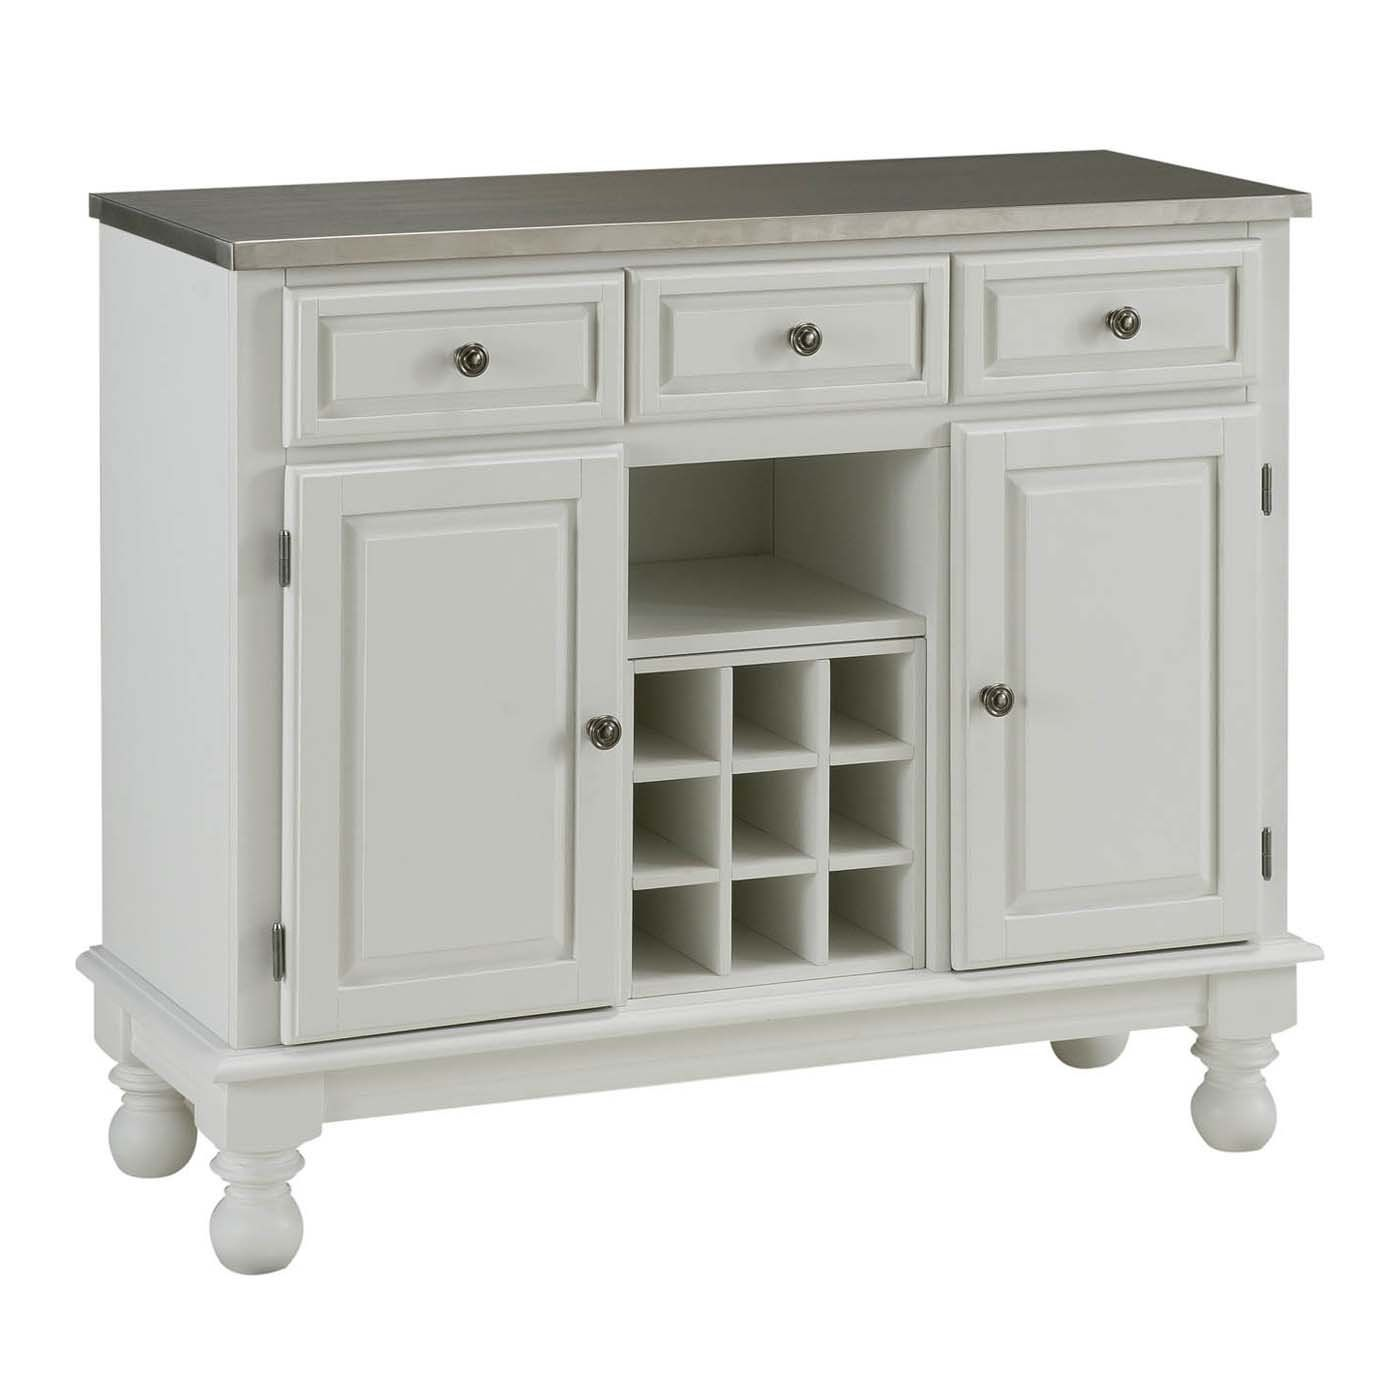 Home Styles 5300 00 Premier Buffet Server Sideboard